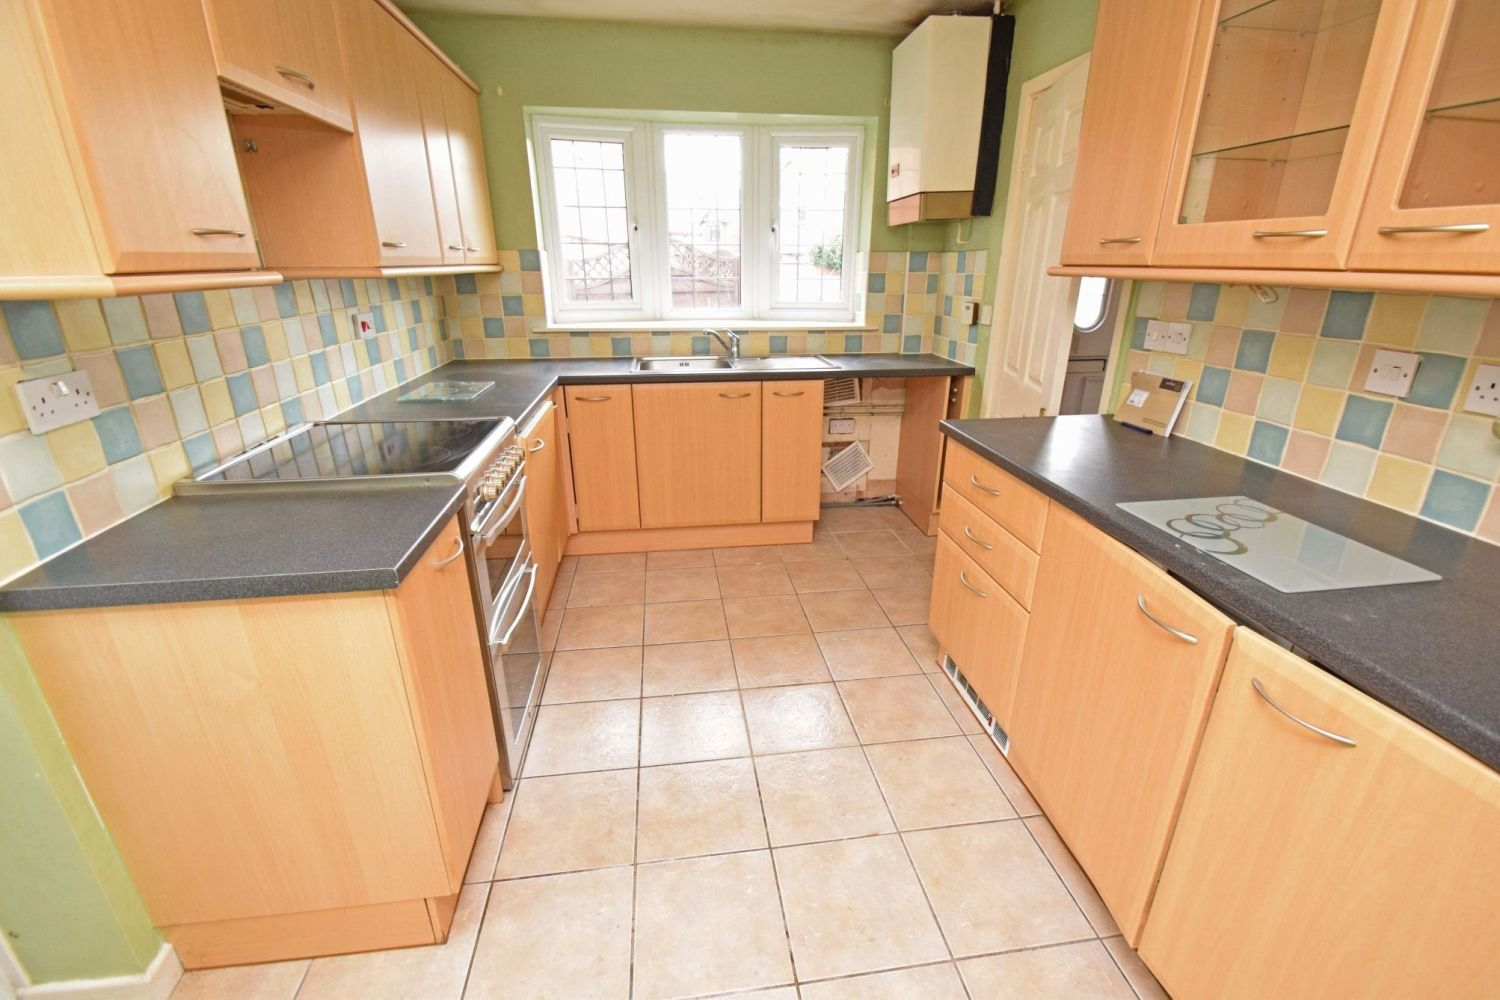 3 bed detached for sale in Avon Close, Stoke Heath, Bromsgrove, B60  - Property Image 6